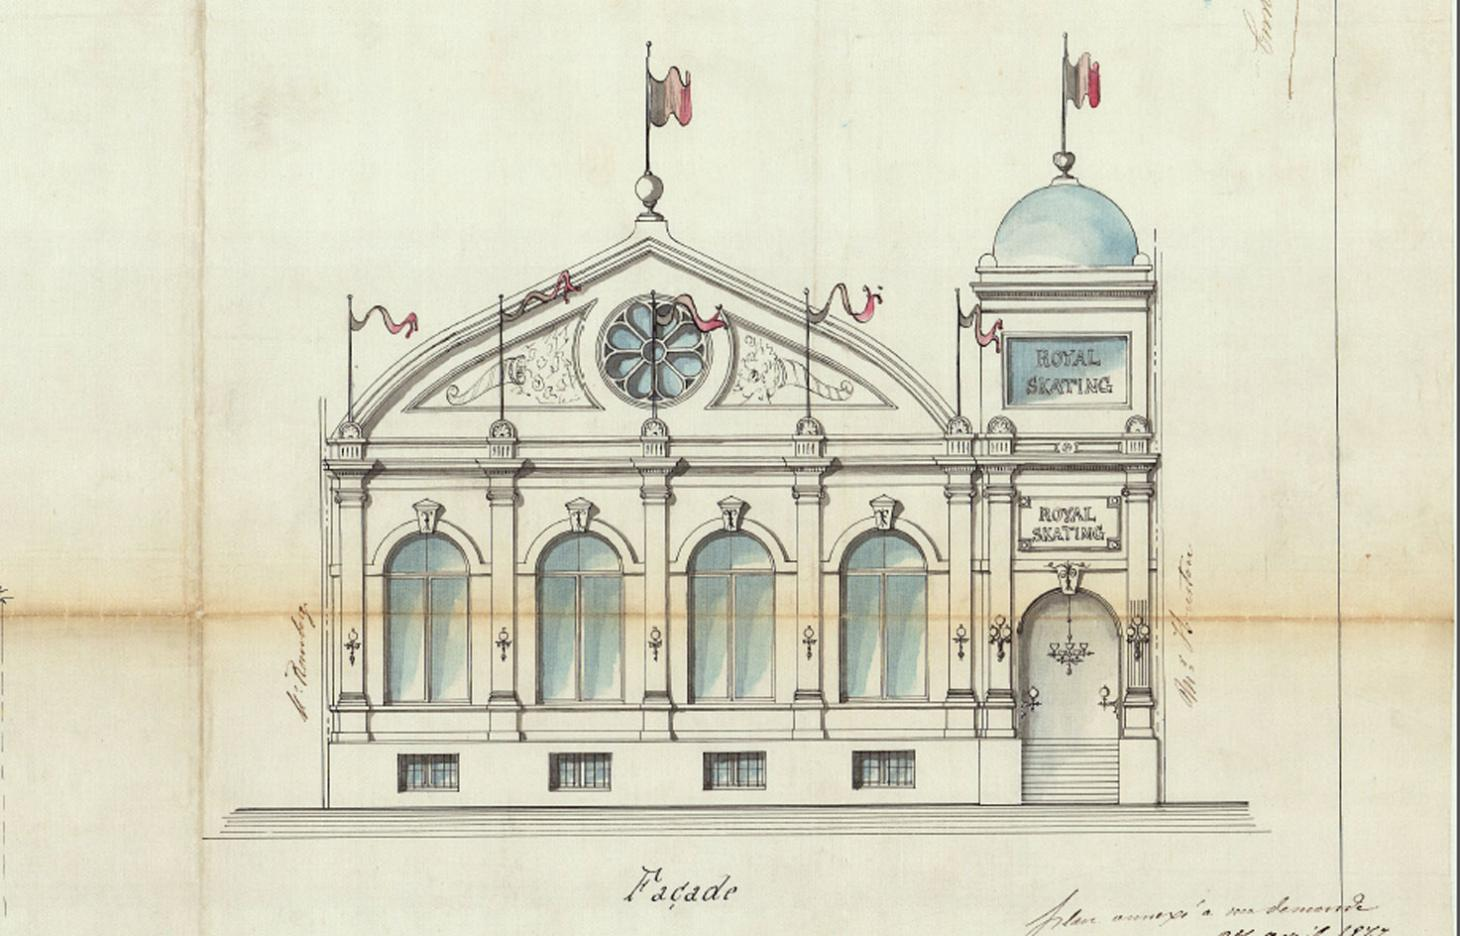 Archival architectural illustration of the facade of the Royal Skating rink in Brussels, dated 1877. The roller skating rink is now an art gallery